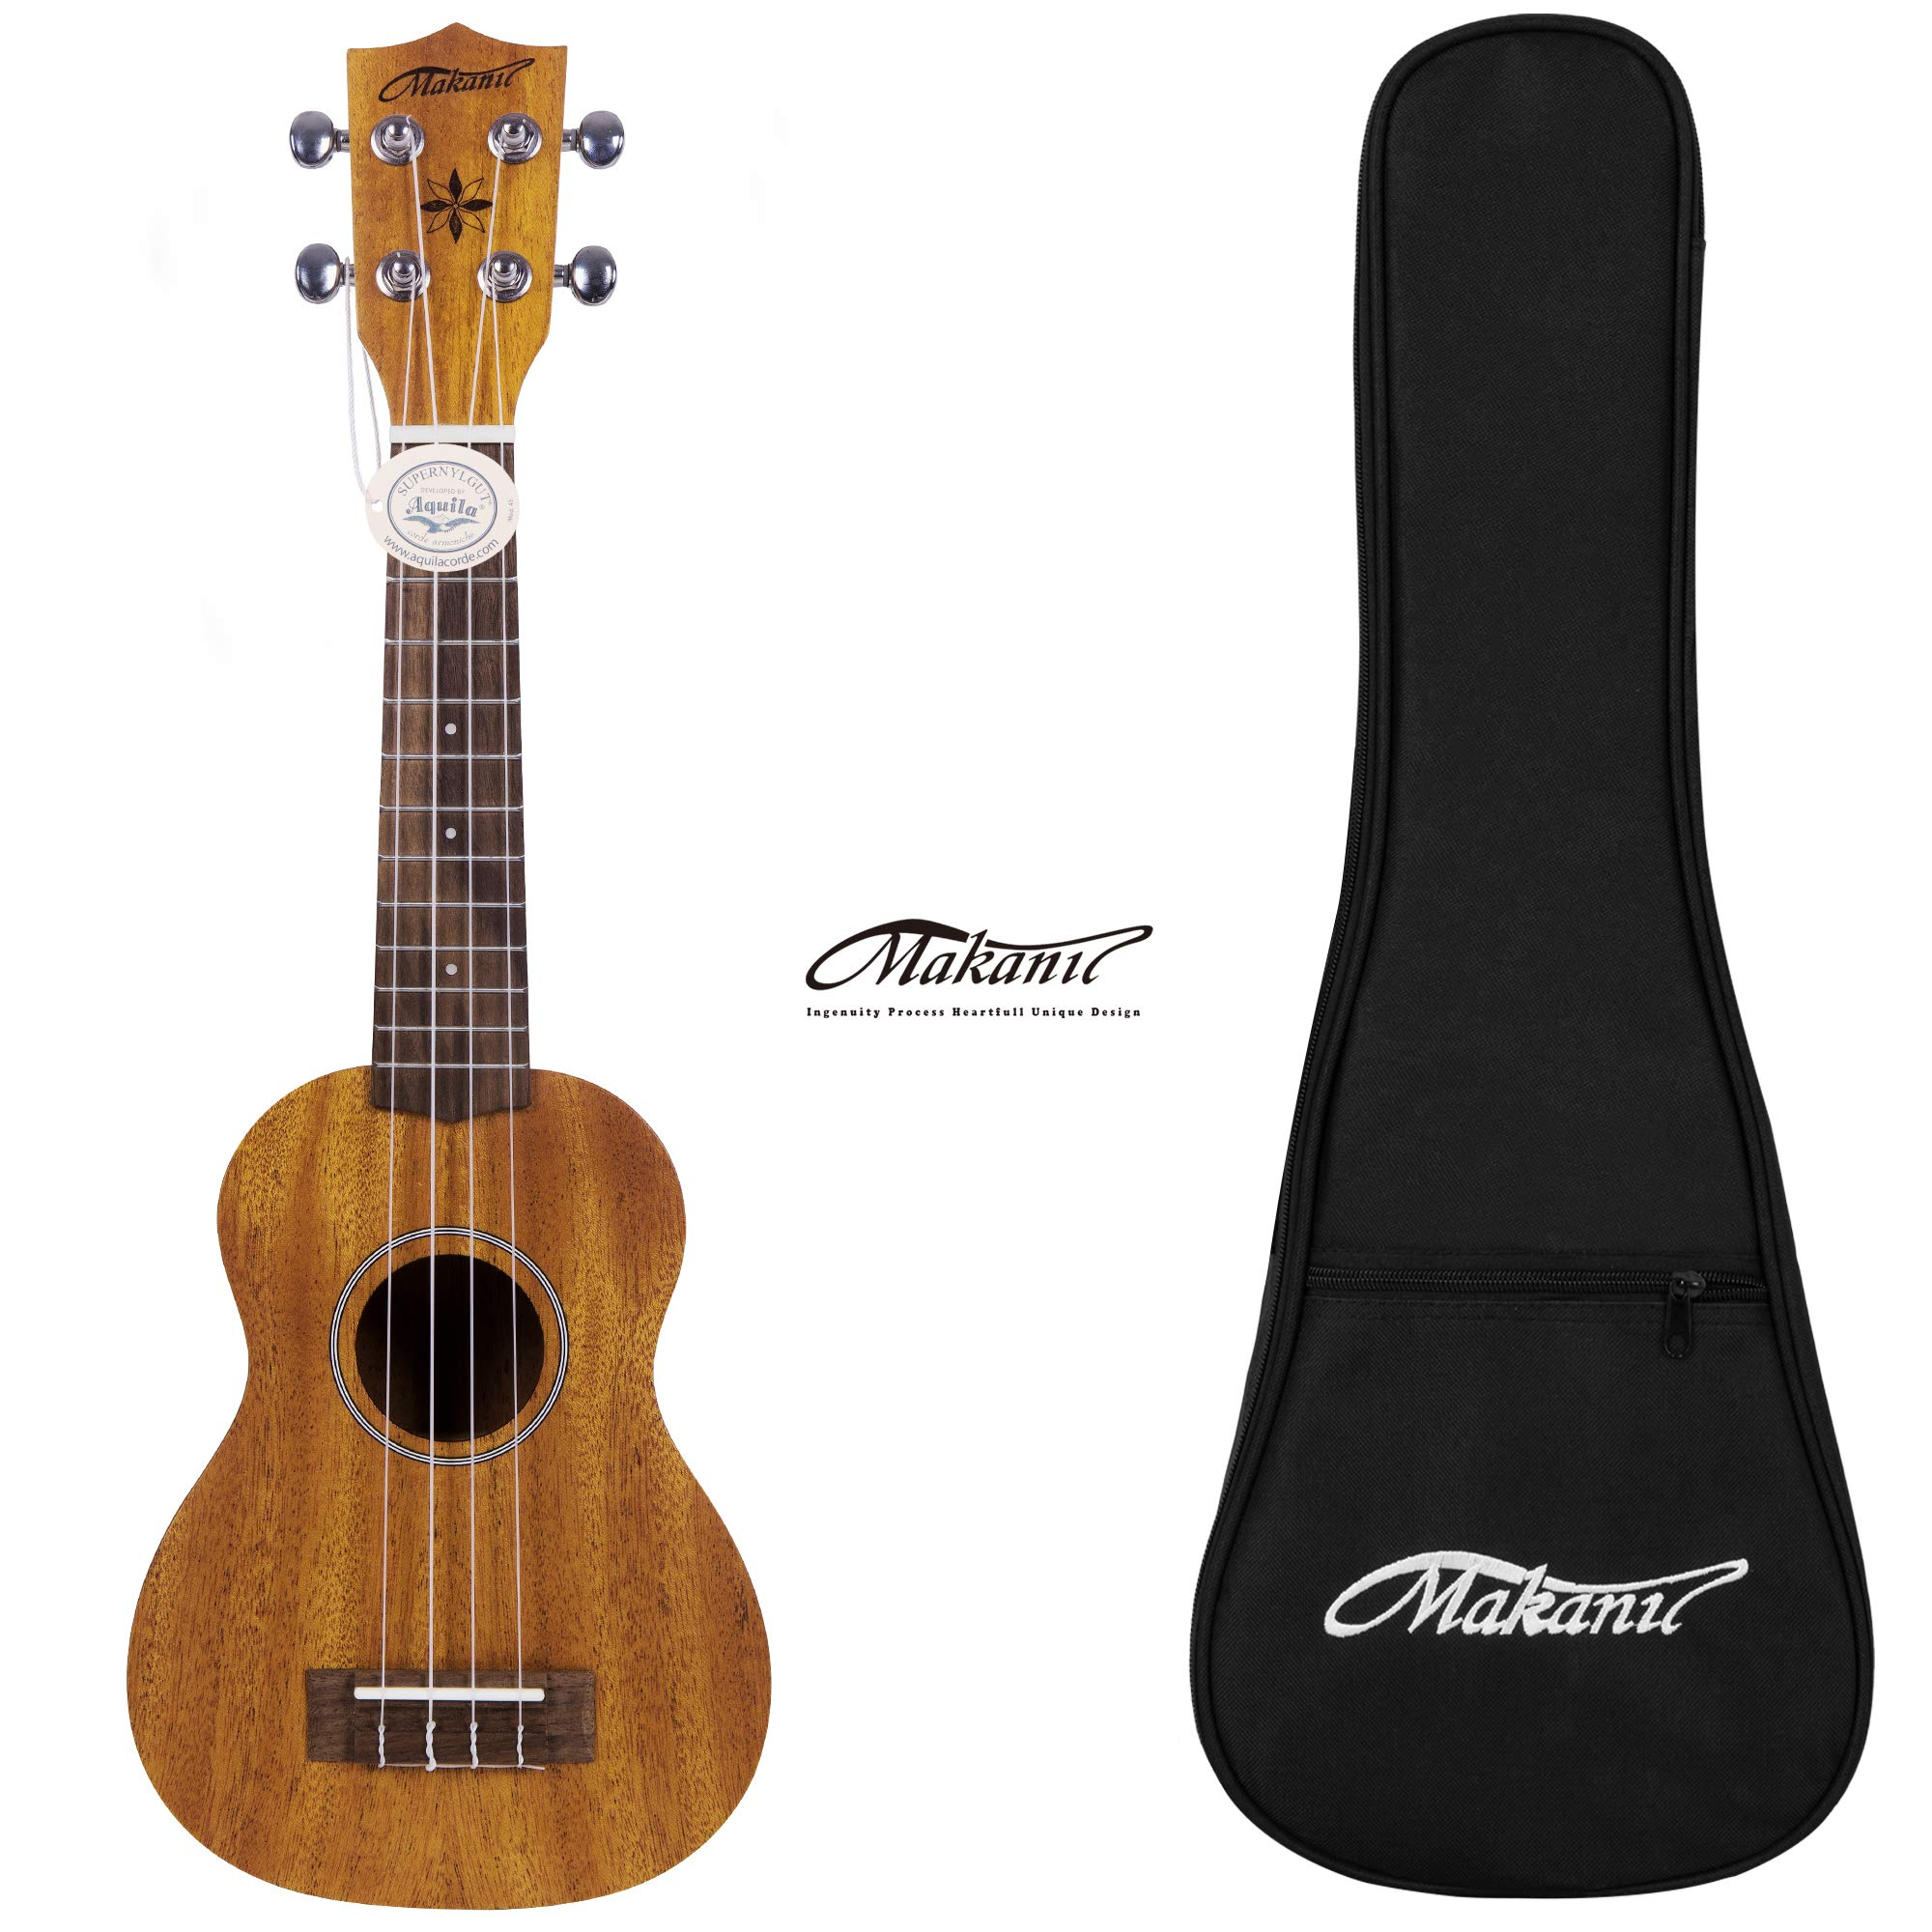 Makanu Soprano Ukulele Maho 21 Inch Ukulele with Gig Bag for Beginners Matt Finish Four String Guitar